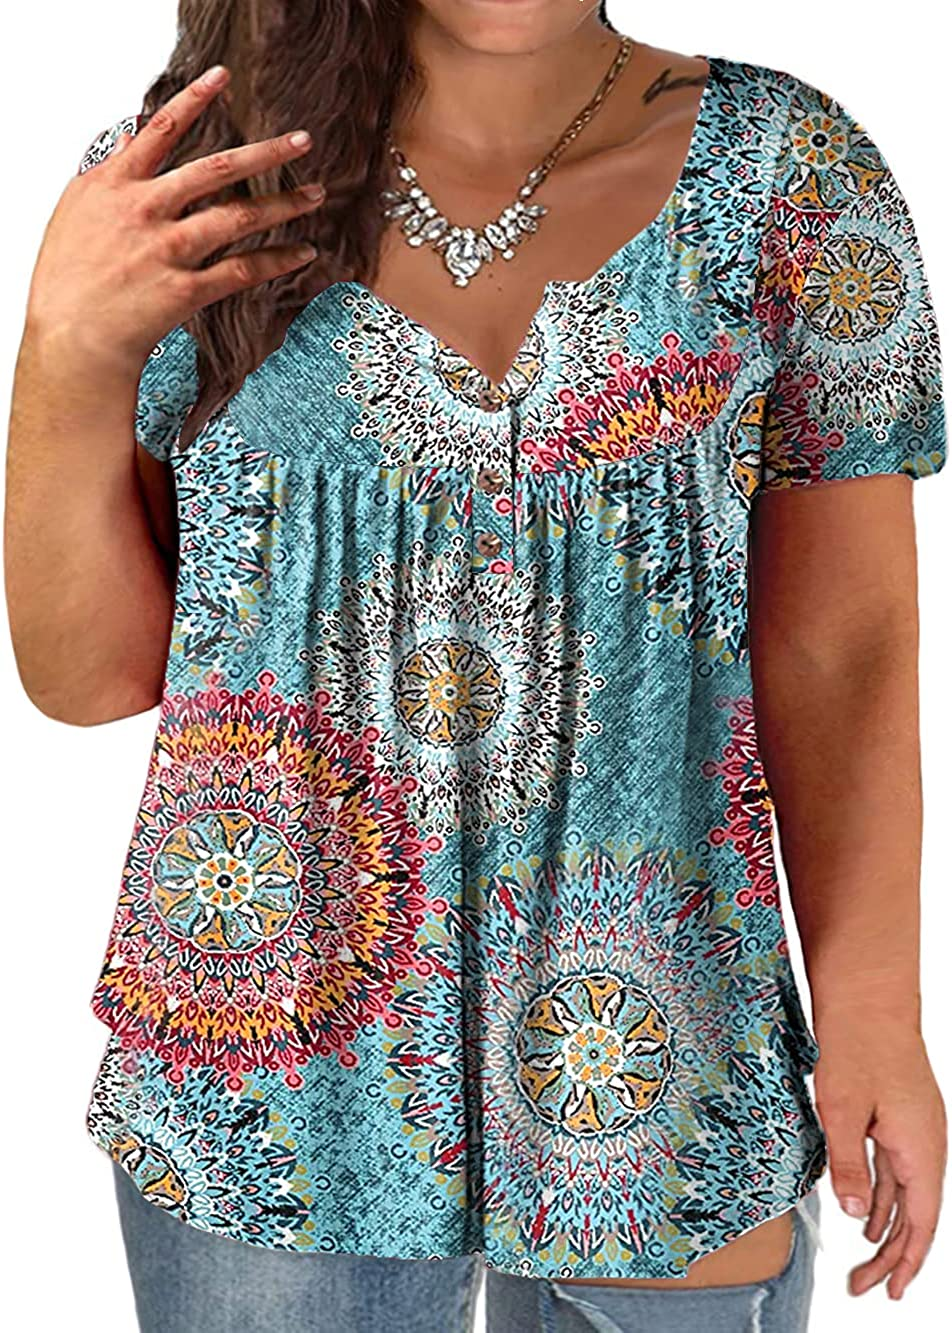 VOGRACE Plus-Size Tops for Women Summer Henley Shirts Flowy Tunics Tee